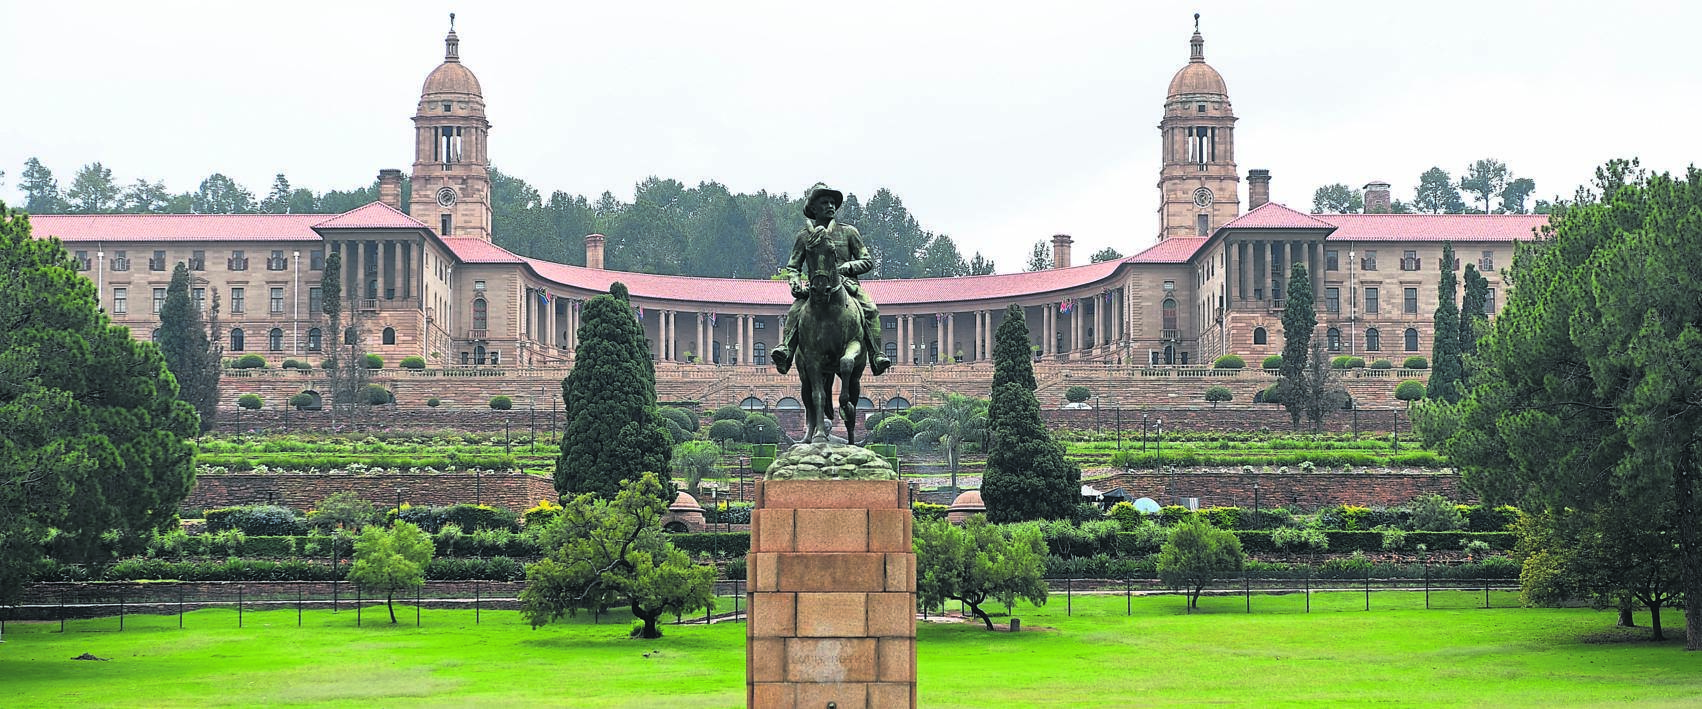 A view of the Union Buildings PHOTO: Gallo images